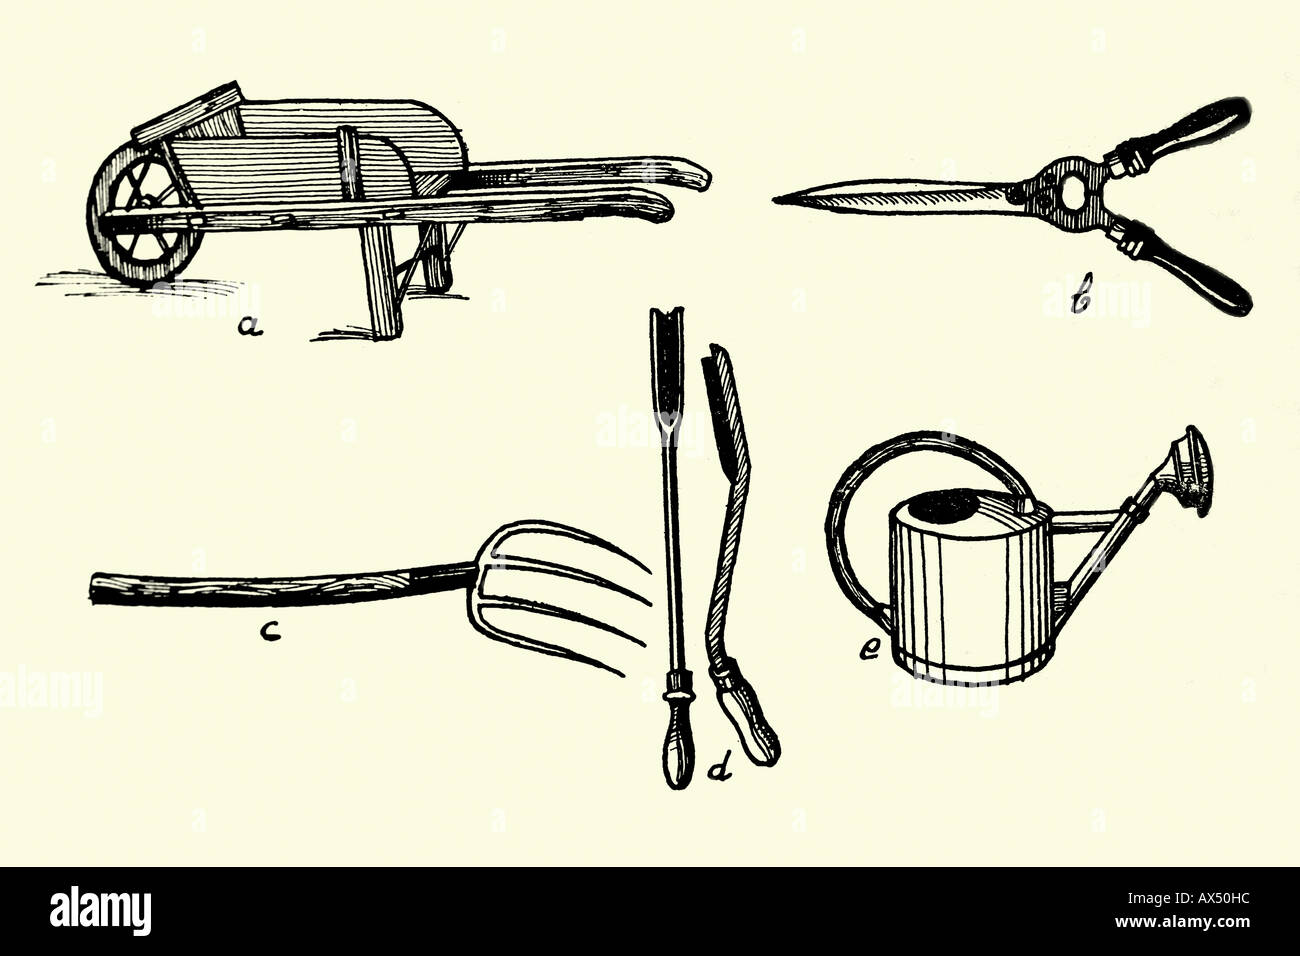 Vintage Gardening Tools Stock Photos Vintage Gardening Tools Stock